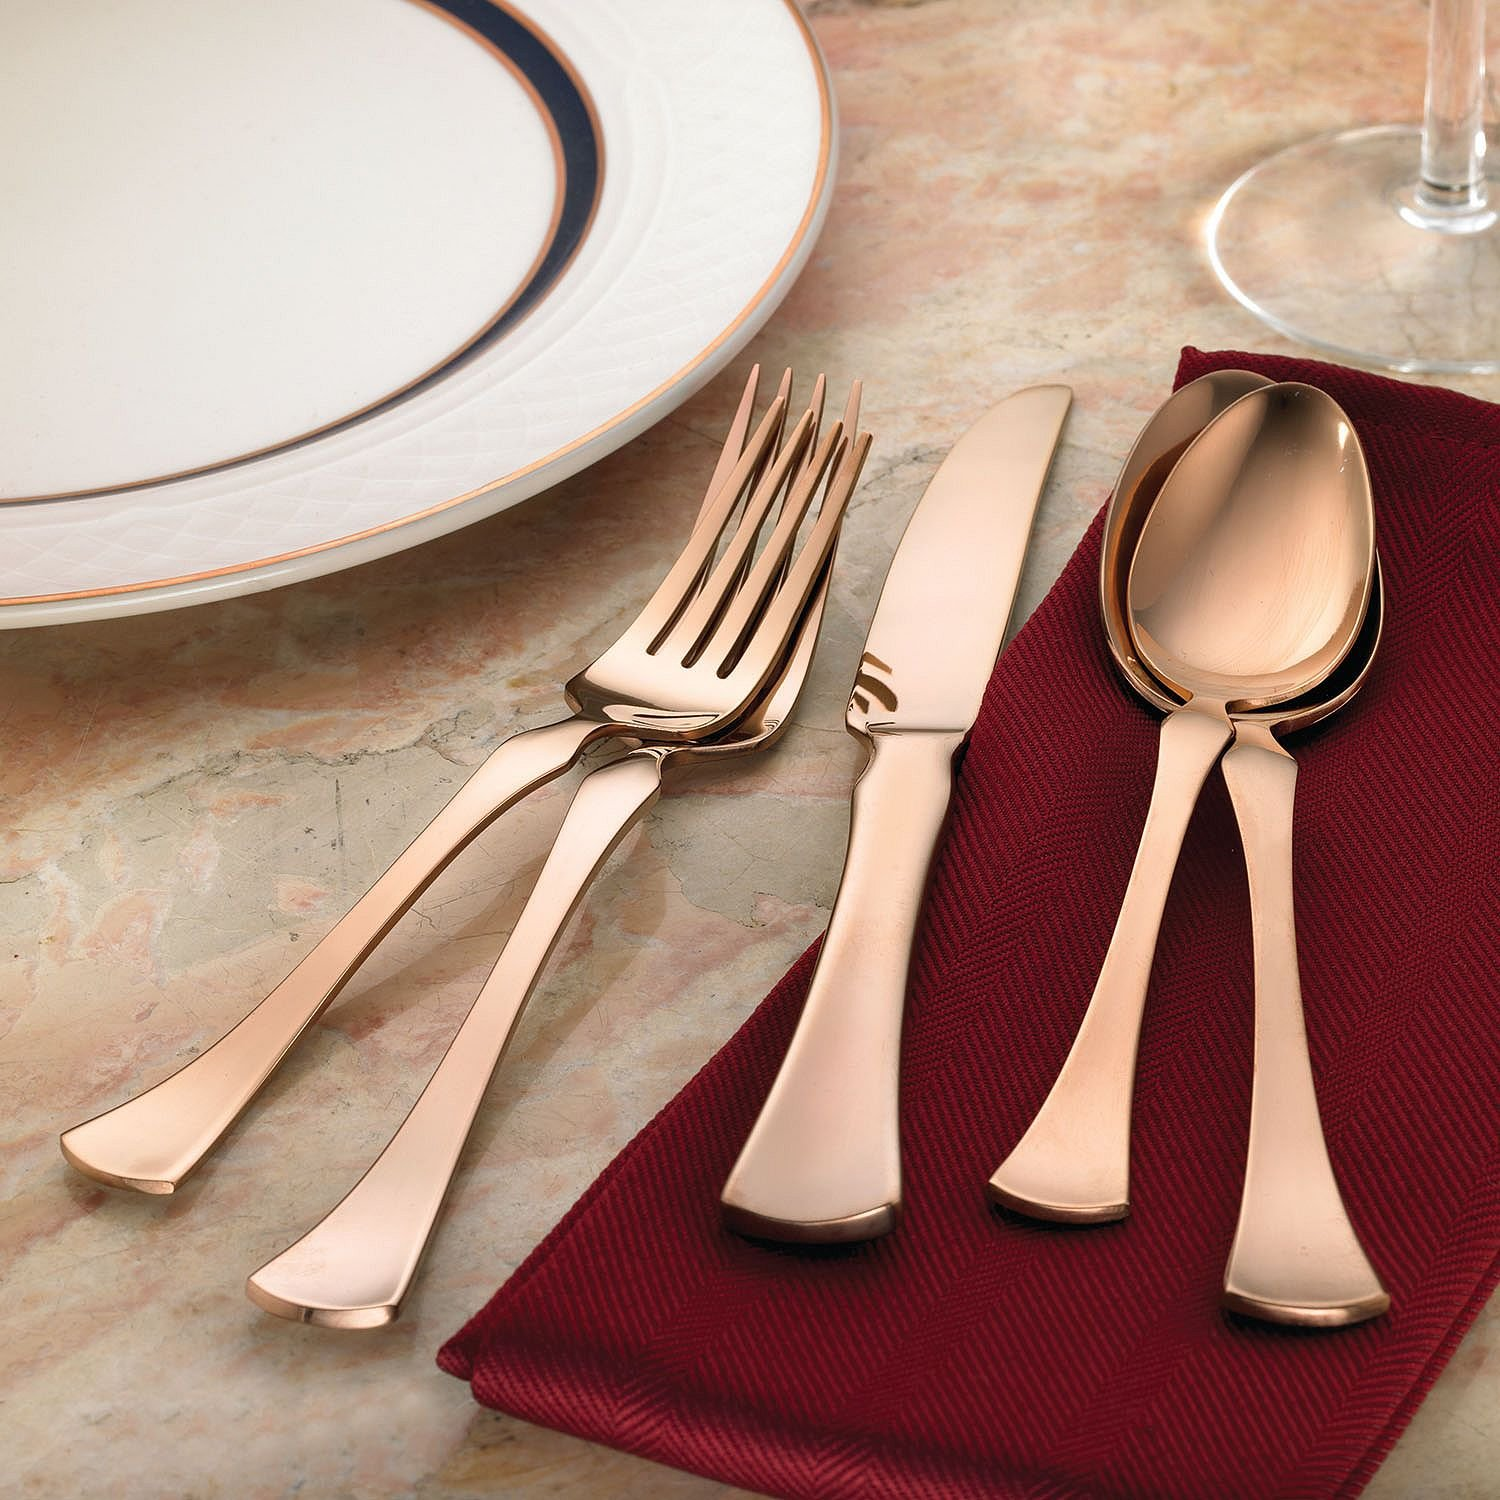 Refined Copper Hampton Forge 20-Piece Stainless Steel Flatware Set